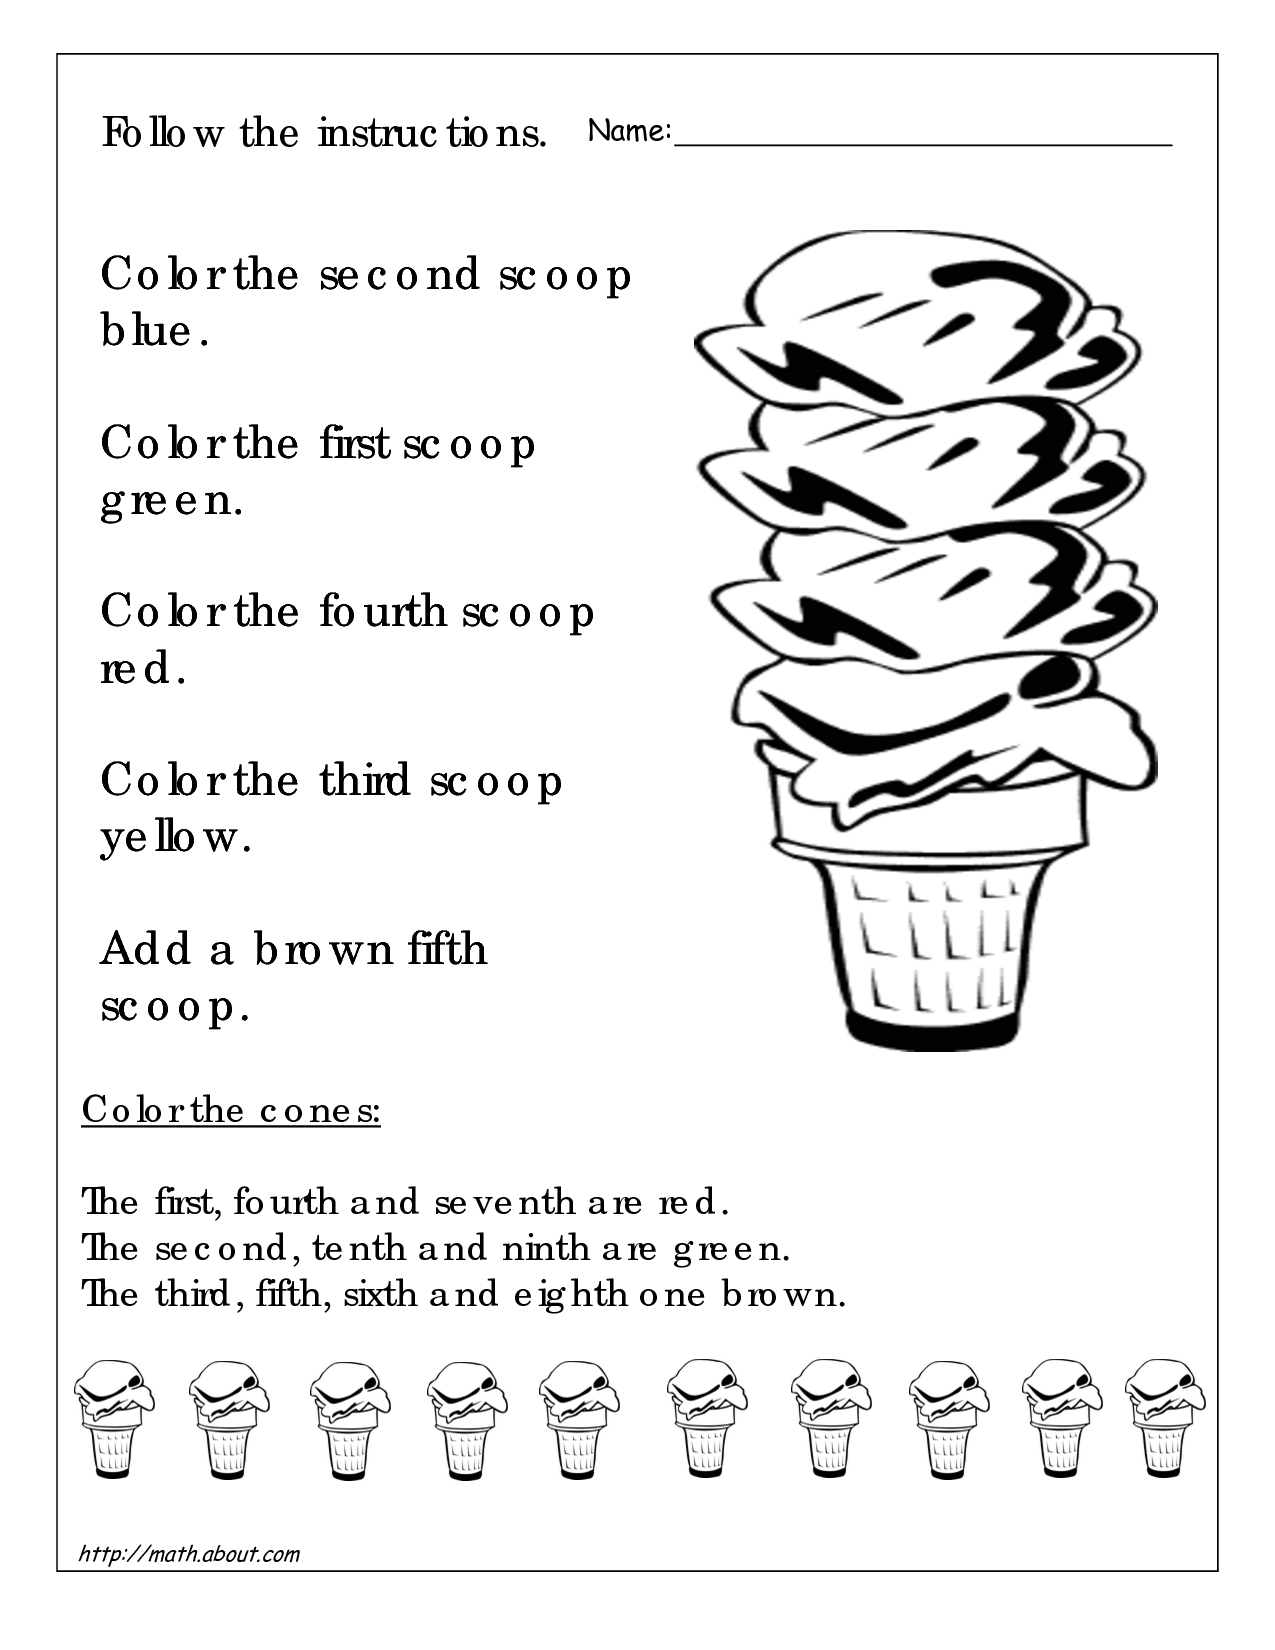 Worksheet 3rd Grade Fun Worksheets Grass Fedjp Worksheet